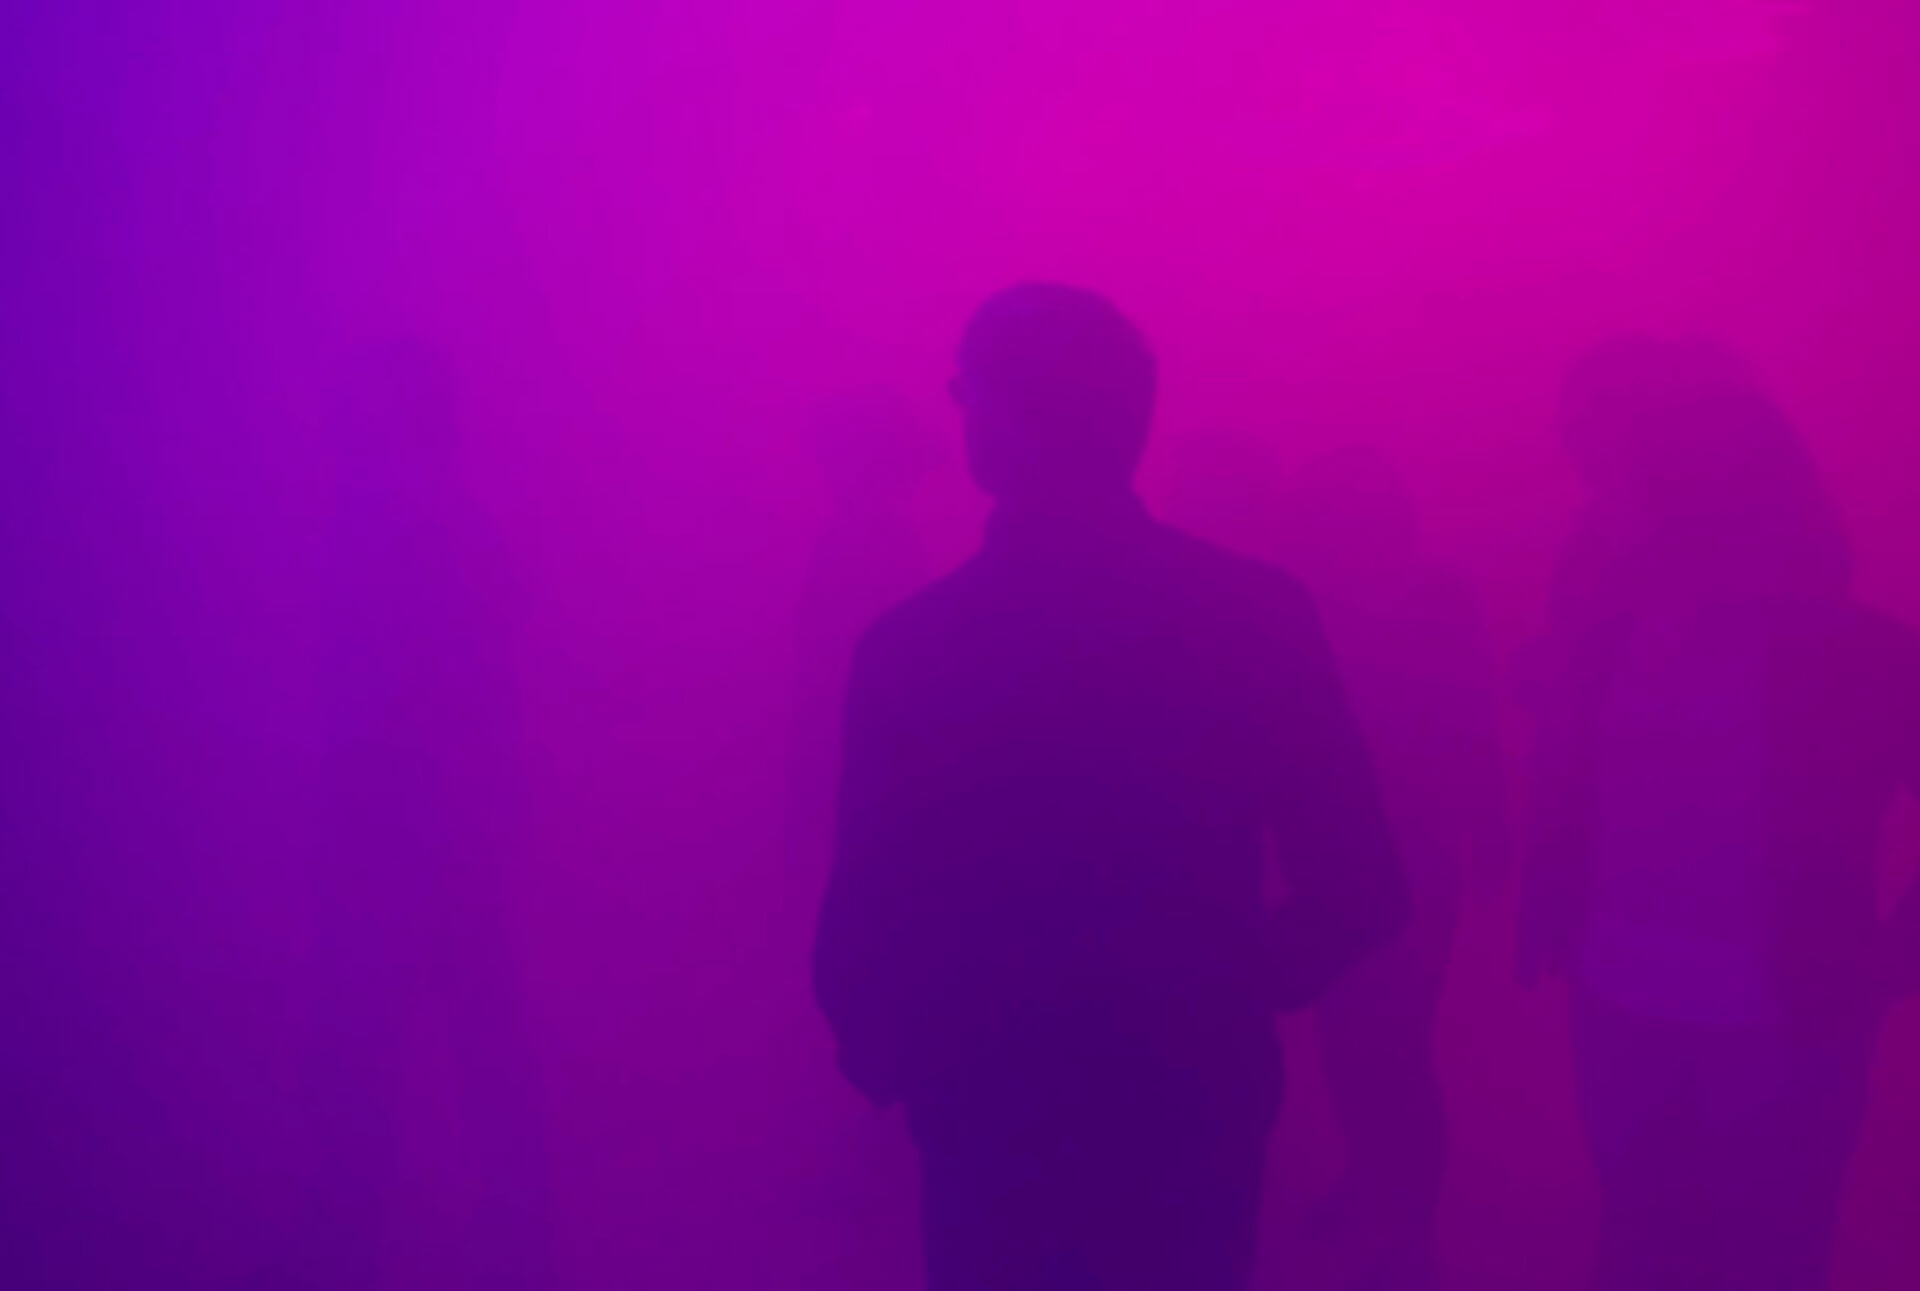 people emerged in colored fog